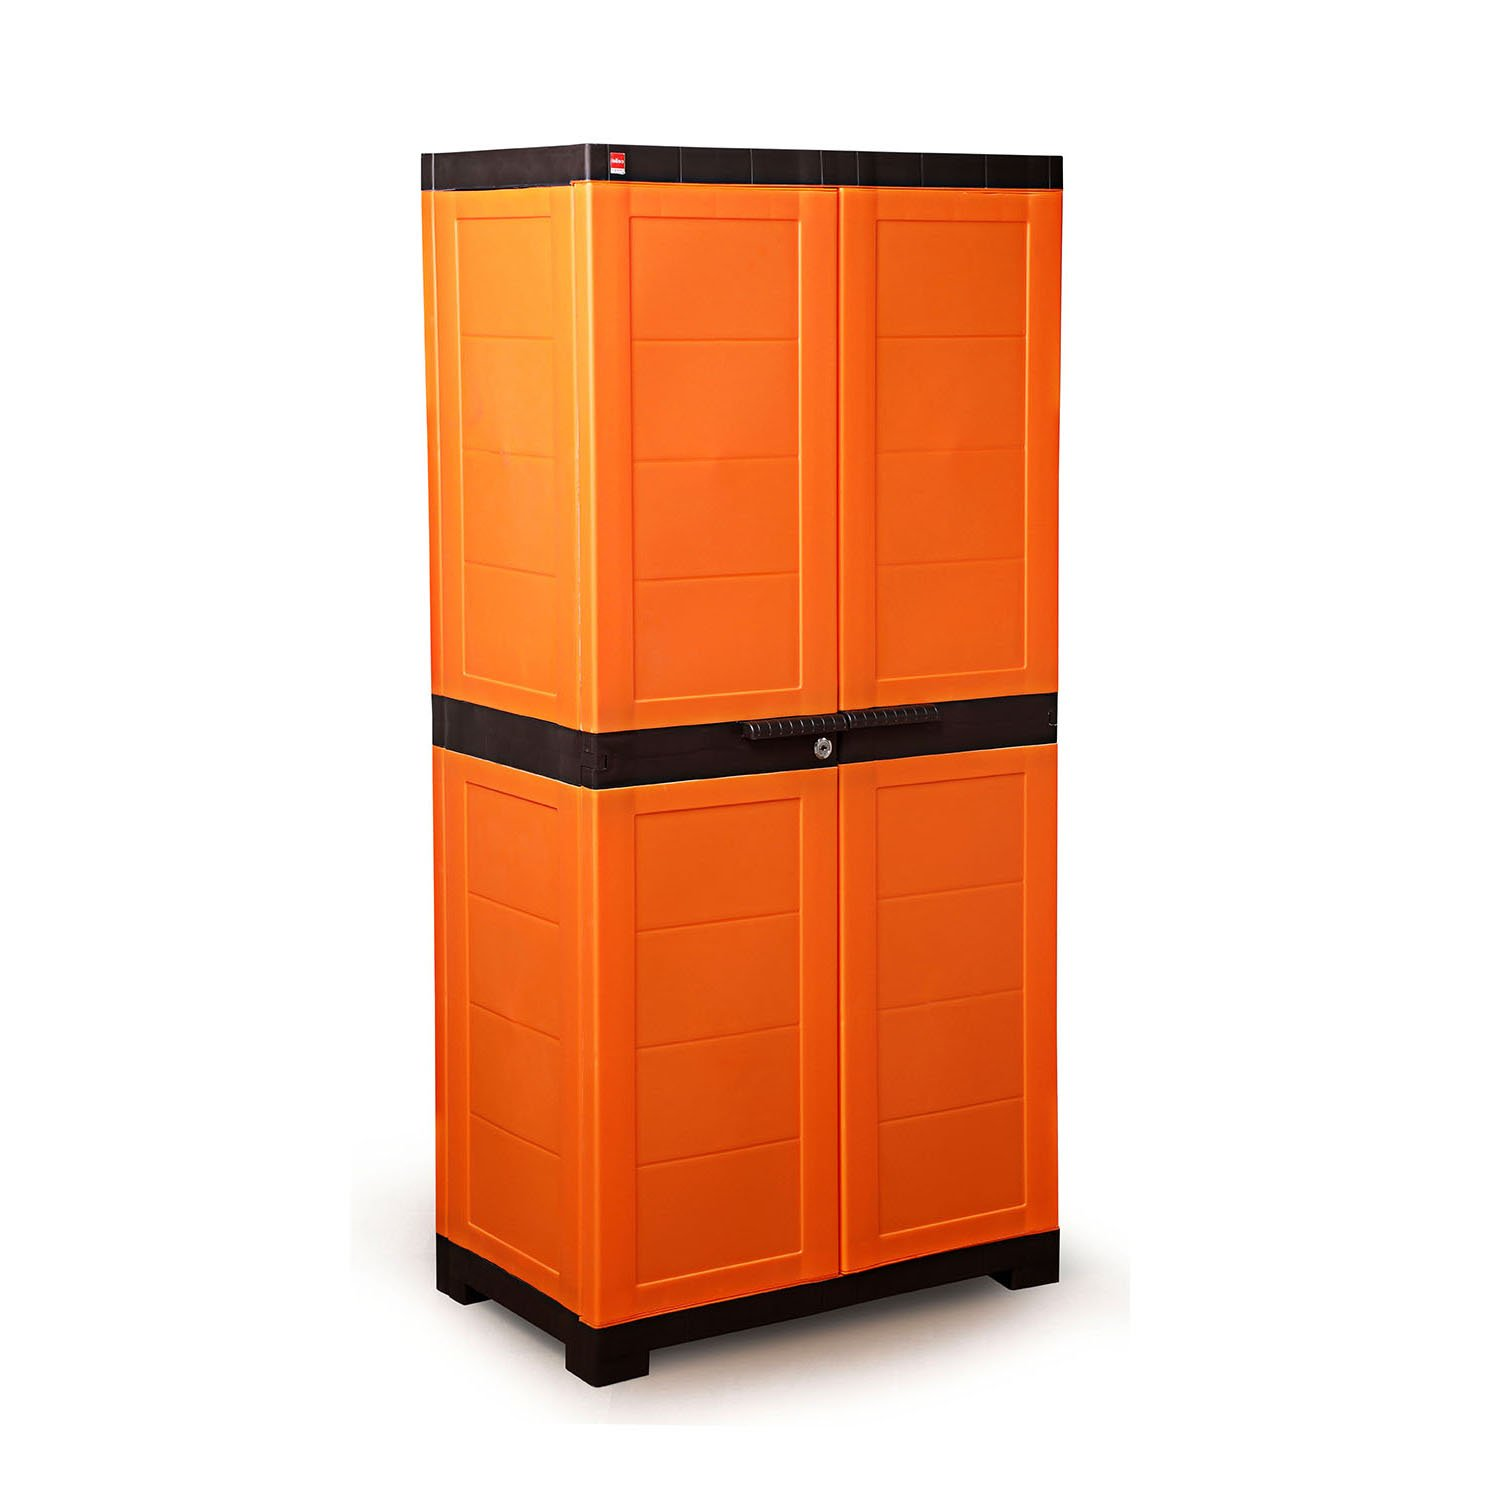 Cello Novelty Big Cupboard With 3 Shelves Orange And Brown Buy Online In Guyana At Guyana Desertcart Com Productid 75925257